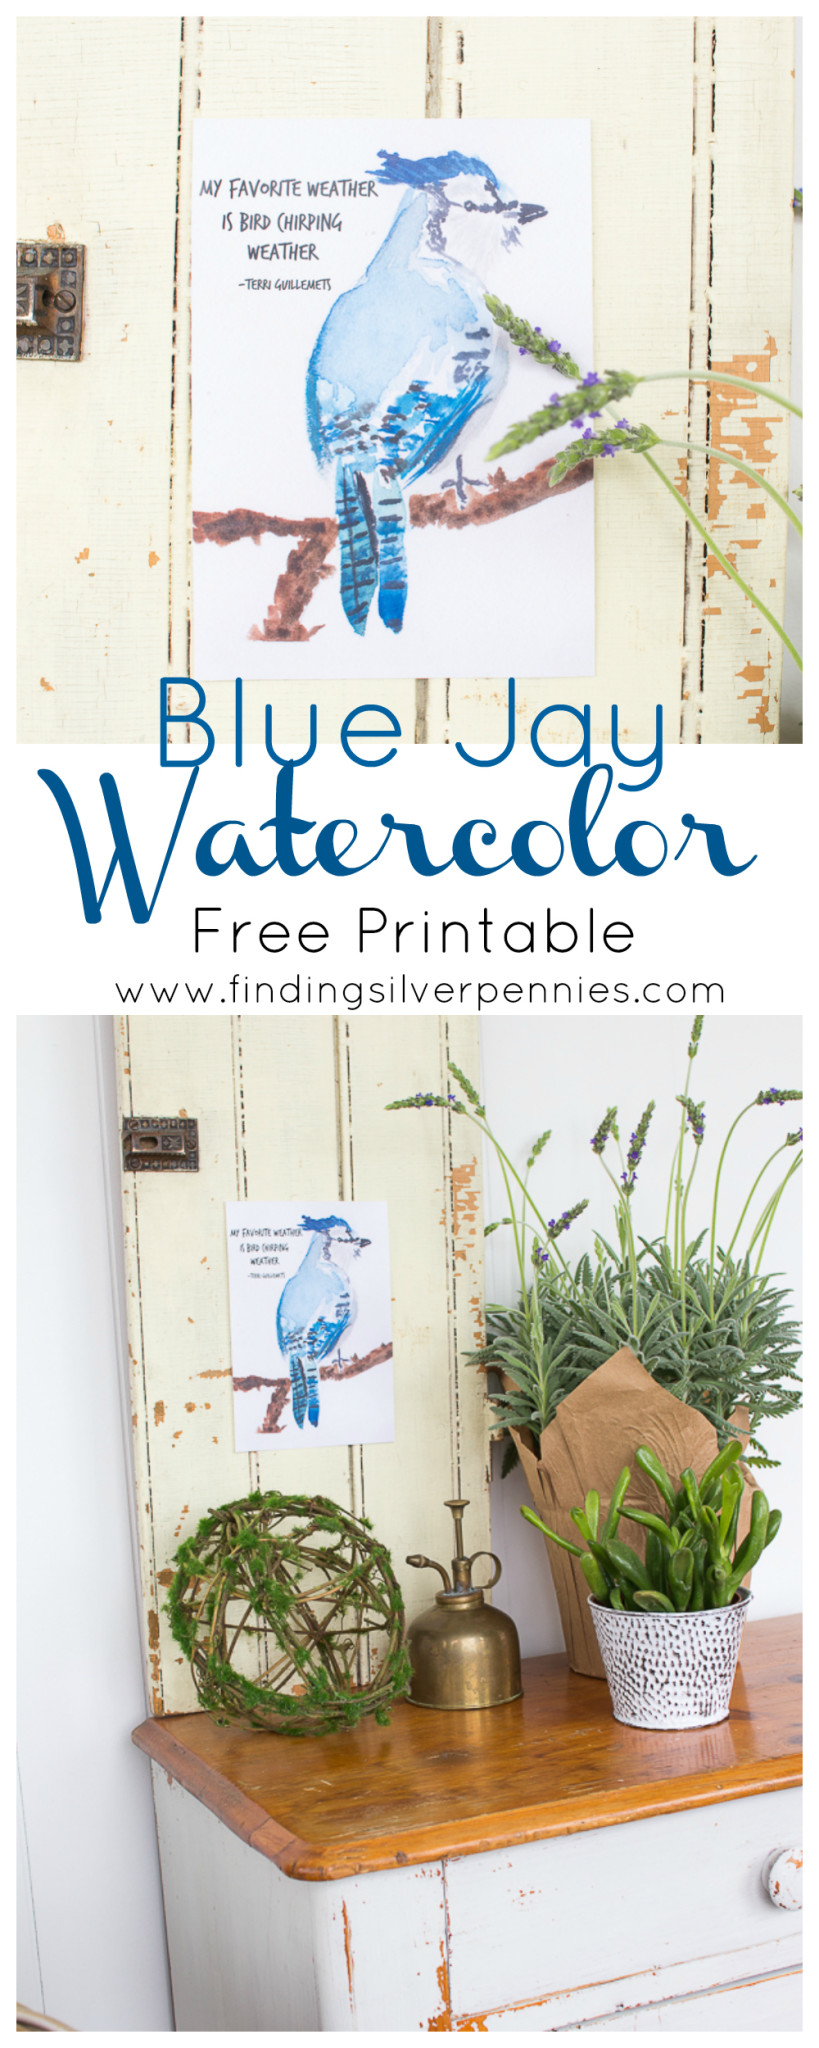 Blue Jay Watercolor Free Printable and Vignette